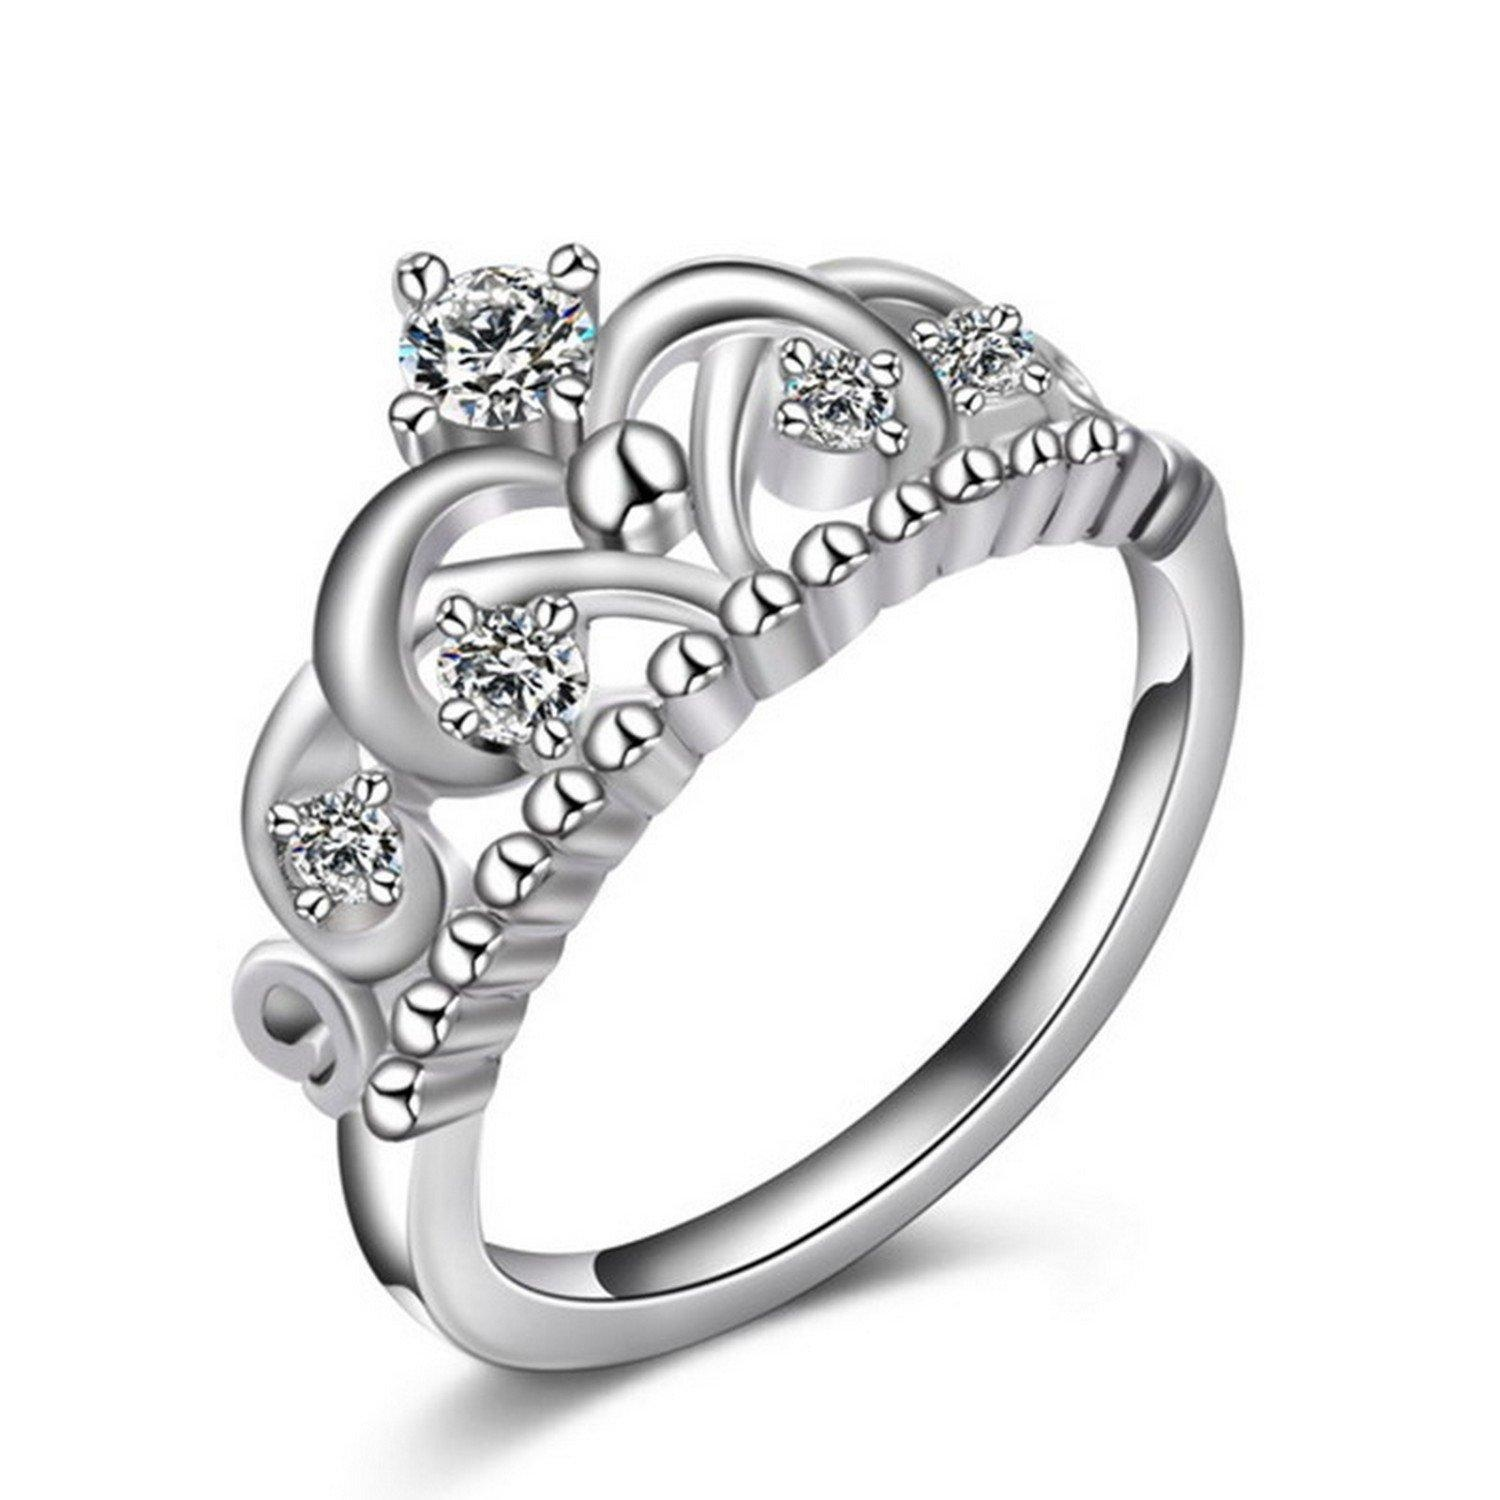 Slyq Jewelry Elegant Crystal Crown Ring White Gold Plated Cz Zircon Ring For Wedding Women